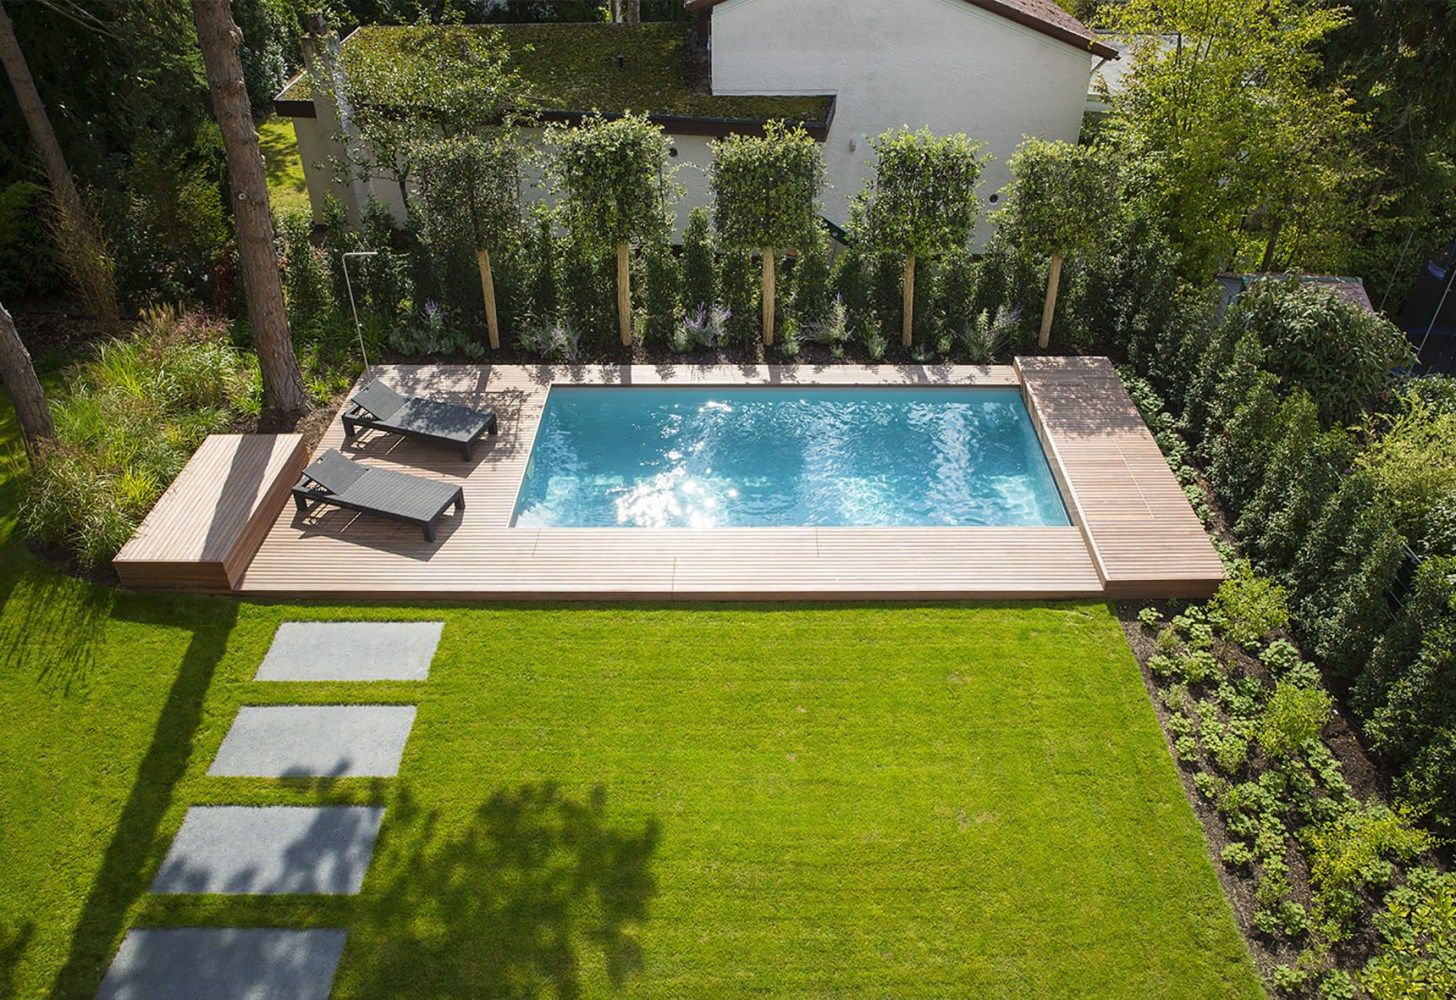 Pool in kleinem garten garten pinterest garten pool for Garten pool 6m